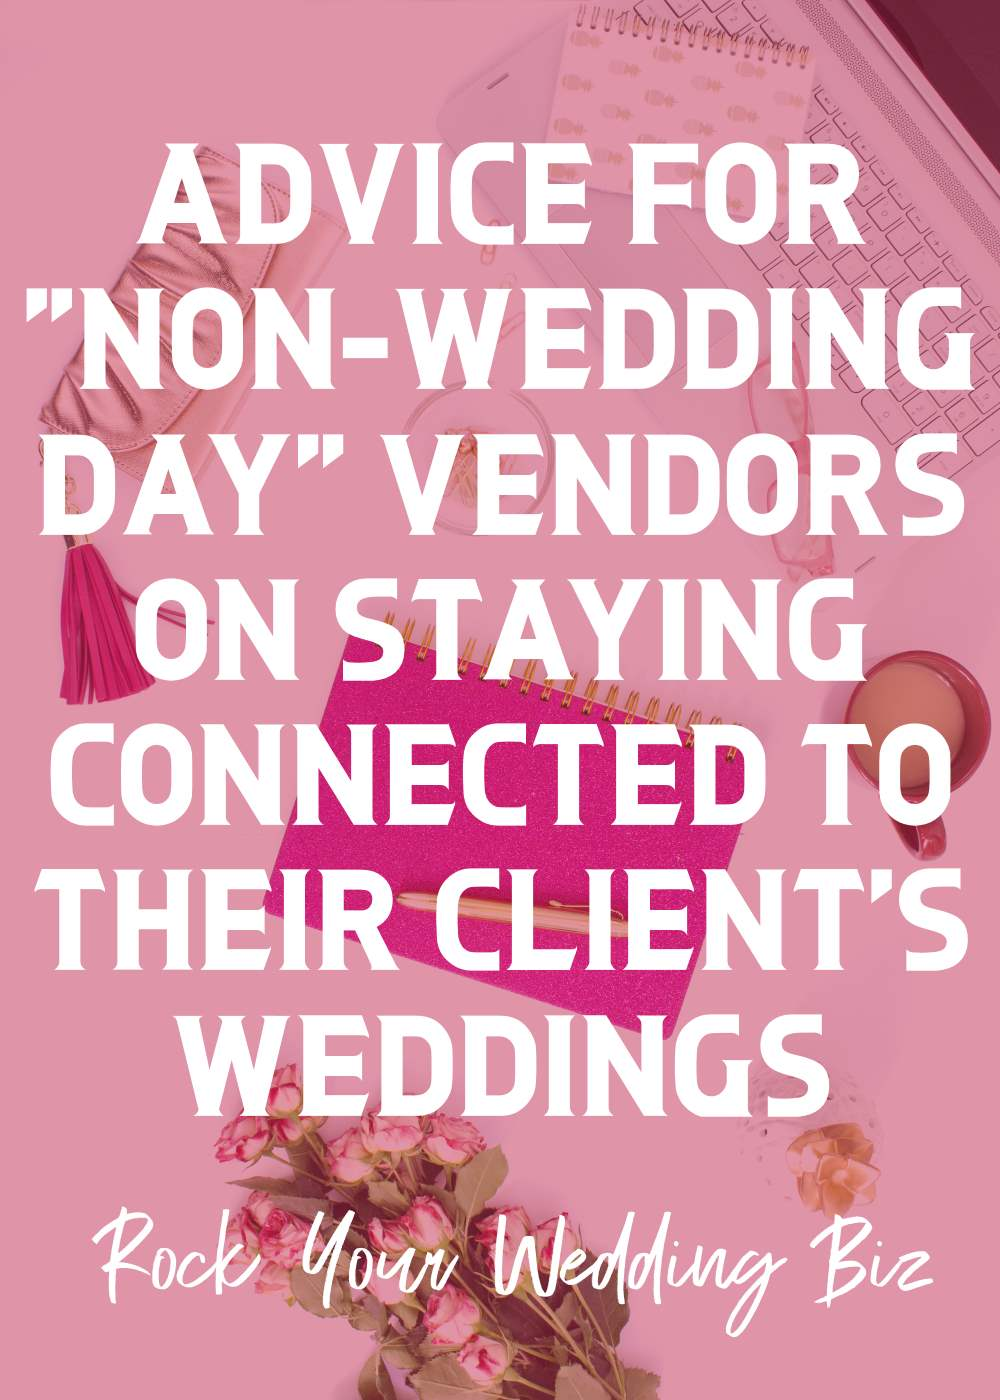 Episode 8 - Advice for Non-Wedding Day Vendors